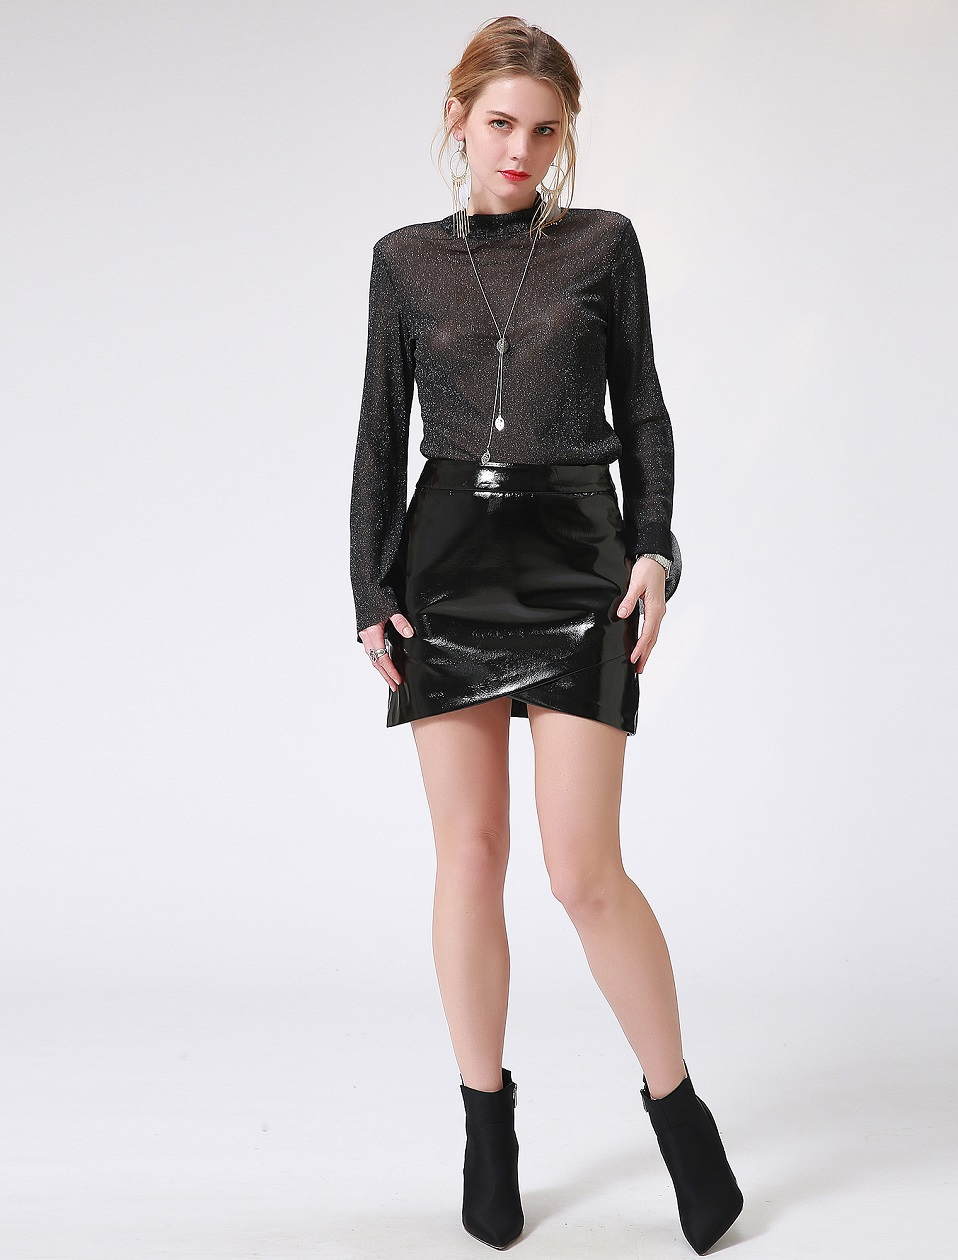 Autumn Winter Women Sexy Mini Skirt Black faux Patent Leather Female Short Pencil Skirt Zipper Fashion Streetwear Skirts Talever 2